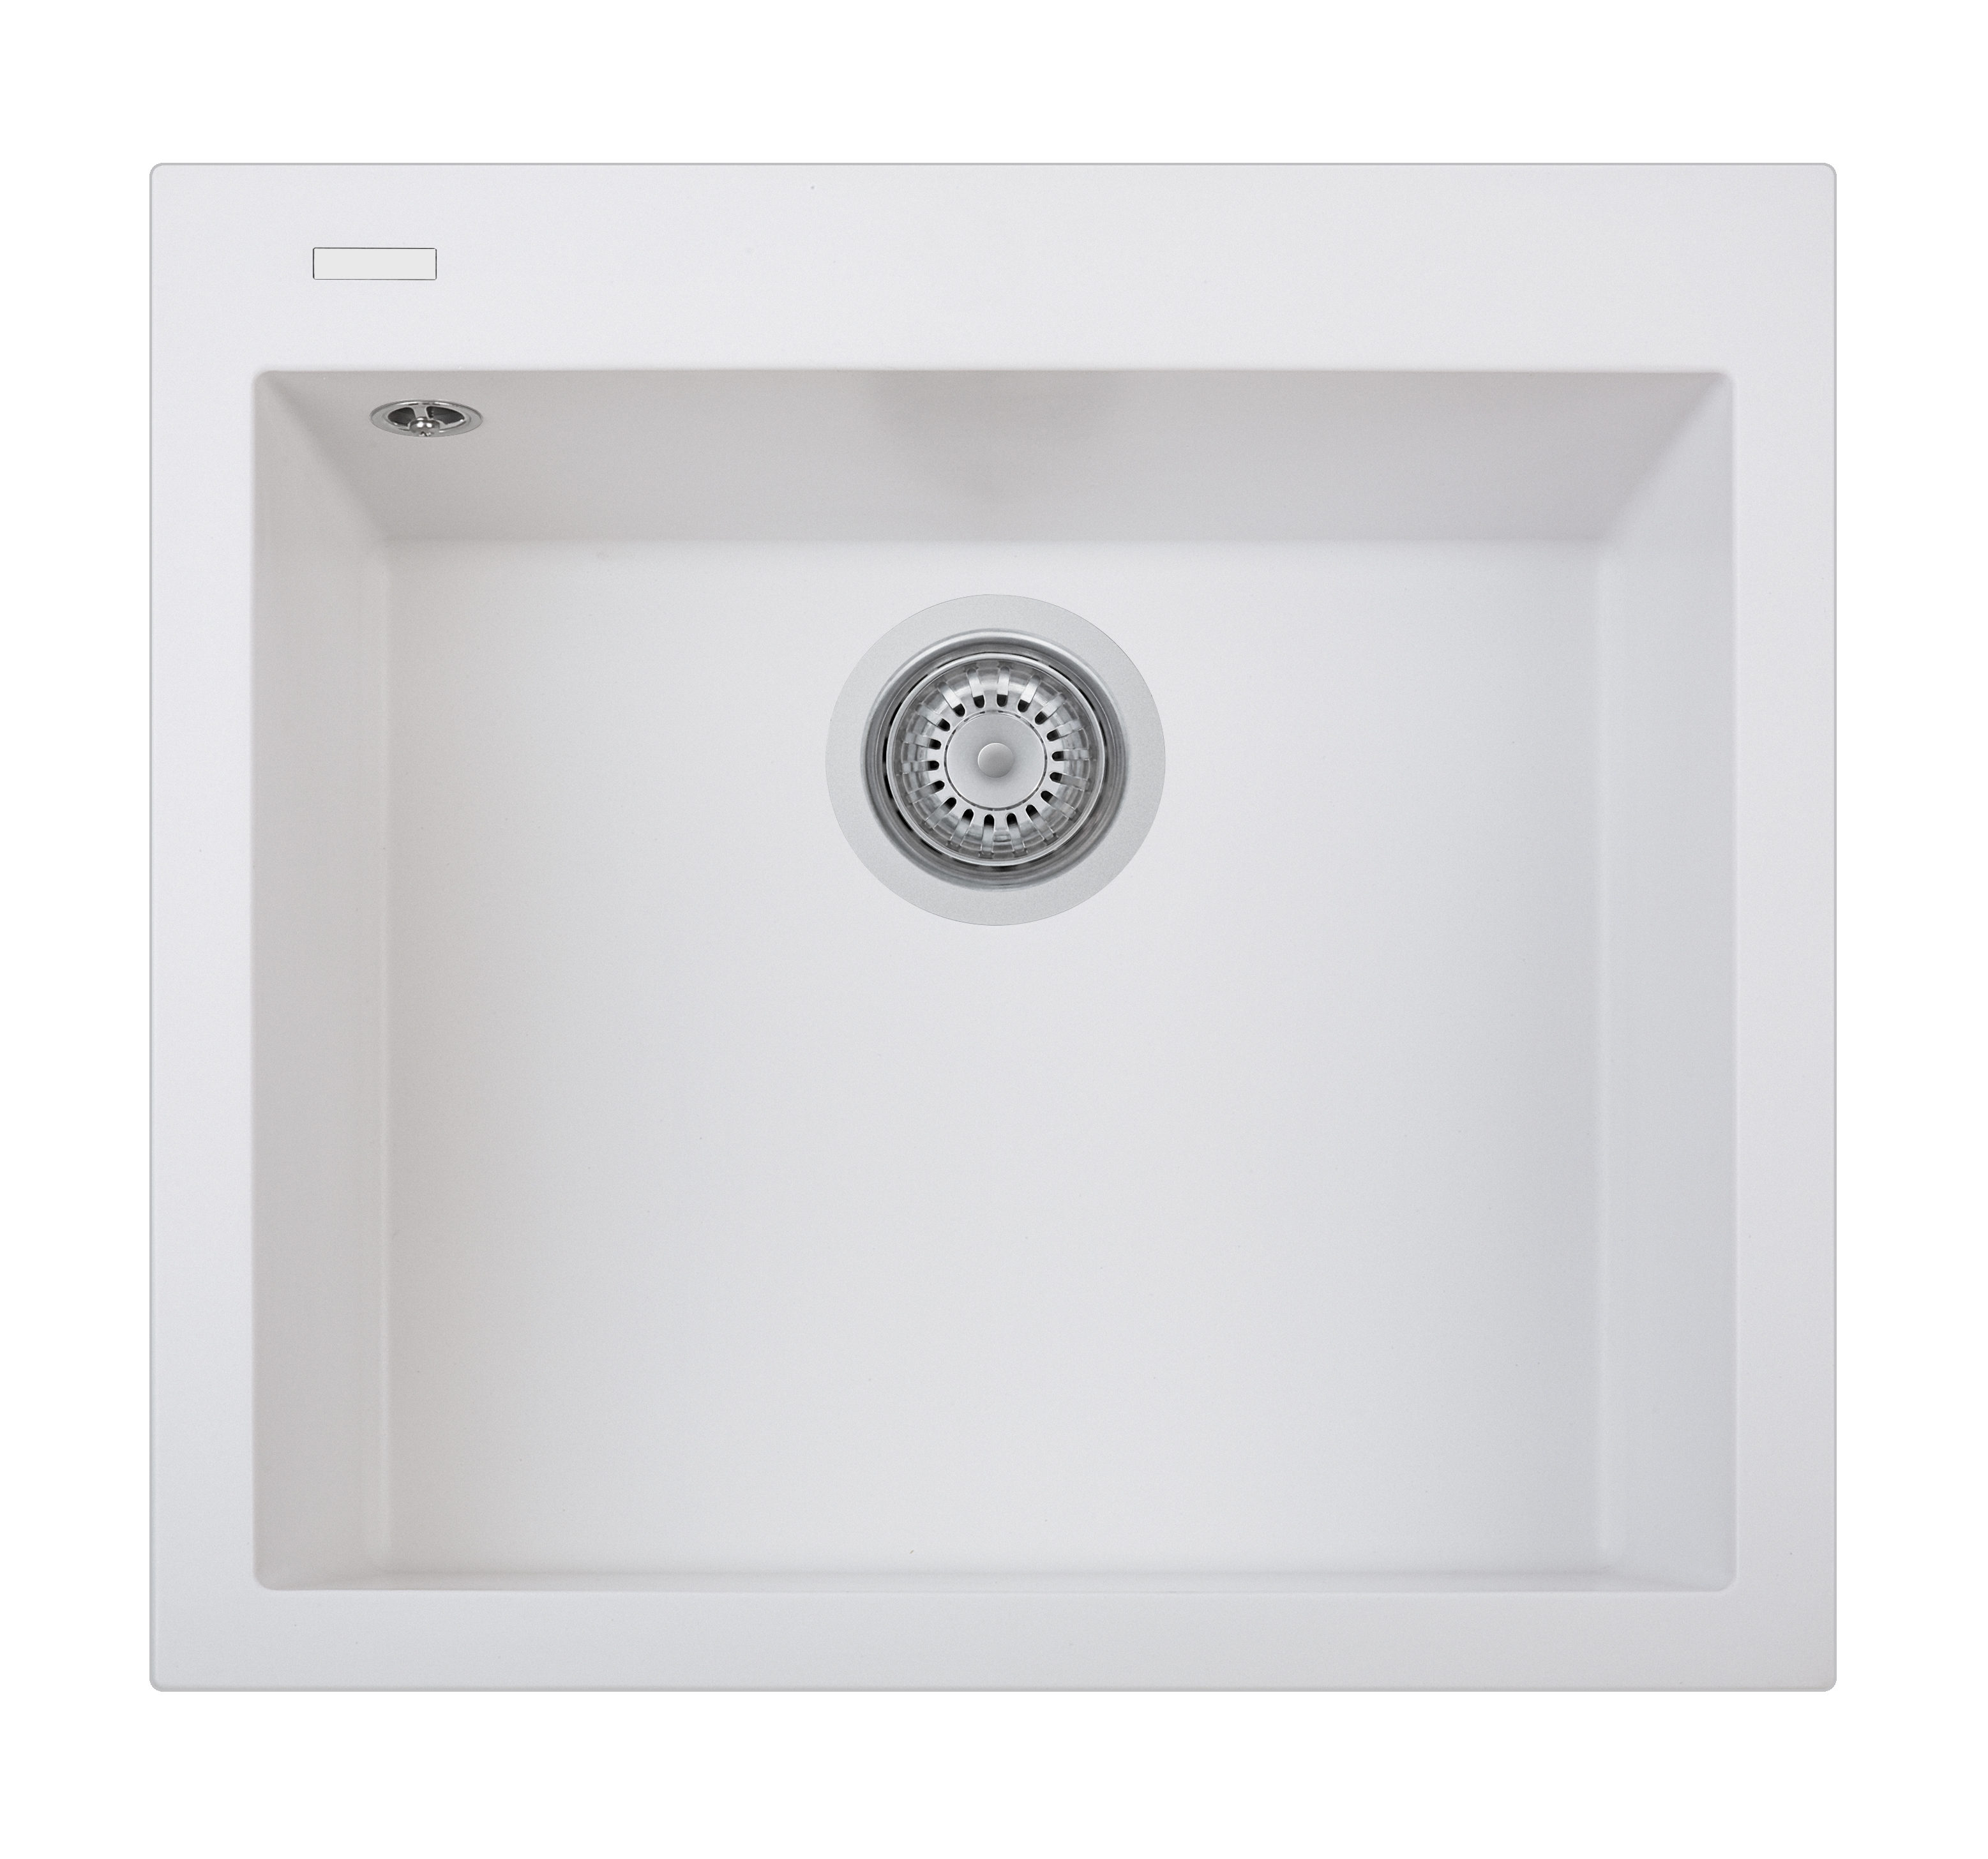 Cube Sink 1 Bowl w/o Drainer White Mount Overmount Sink Small